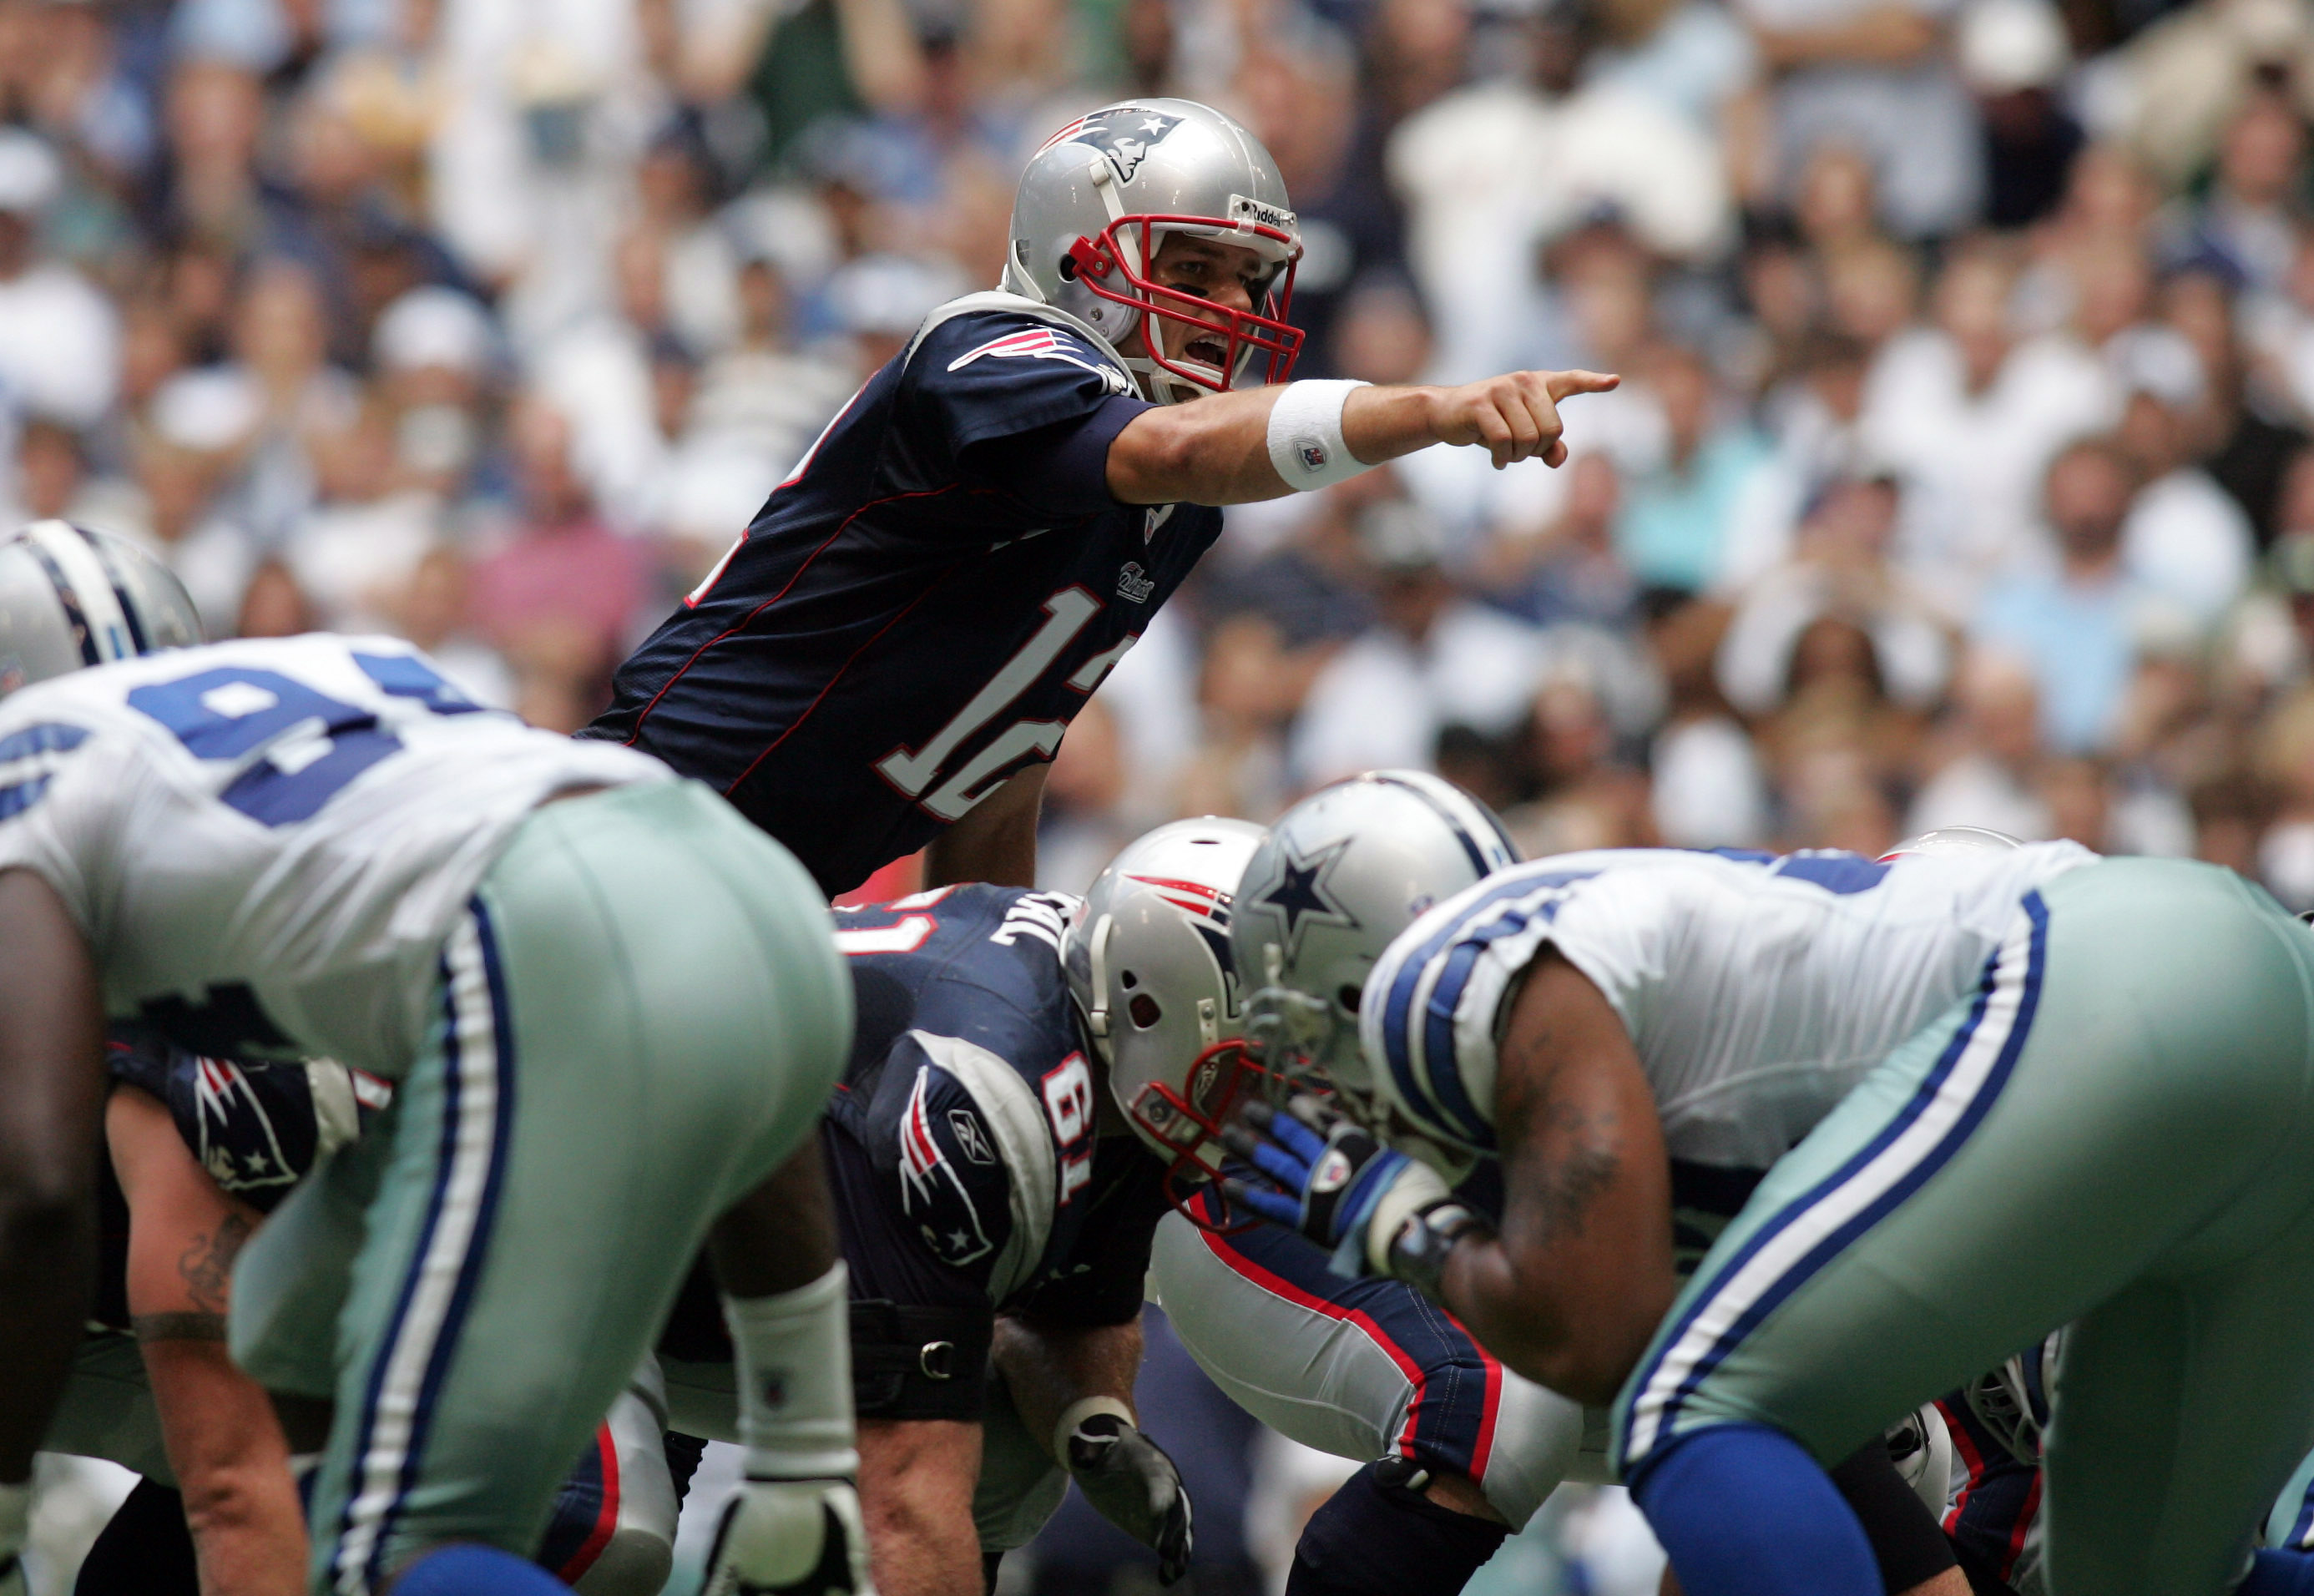 Patriots QB Tom Brady threw 5 TD passes the last time he played in Dallas. (Tim Heitman, USA TODAY Sports)